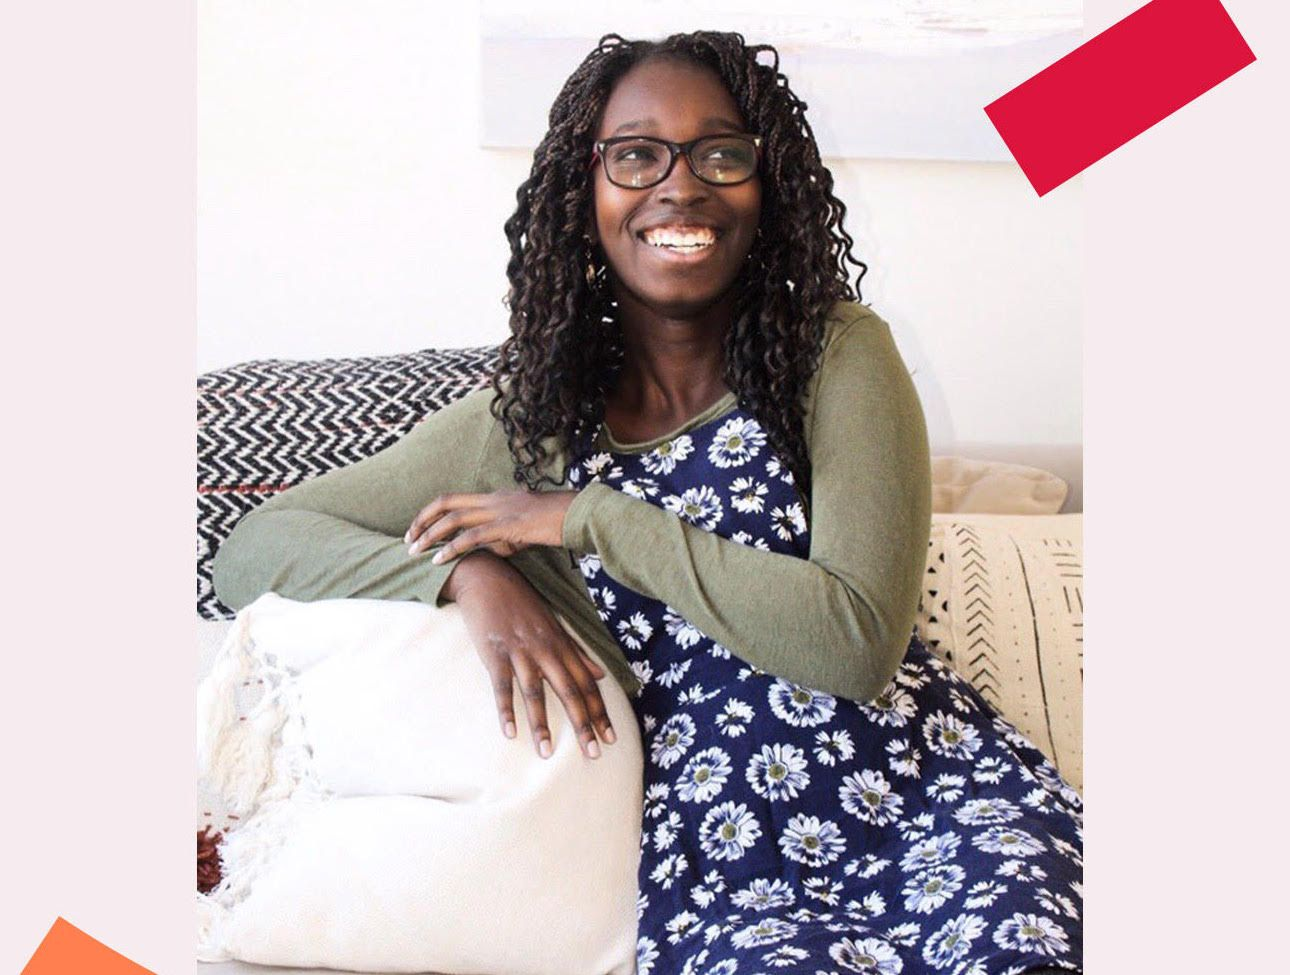 Meet Sofia Ongele – Grand Prize Winner of Student Woman of the Year 🏆